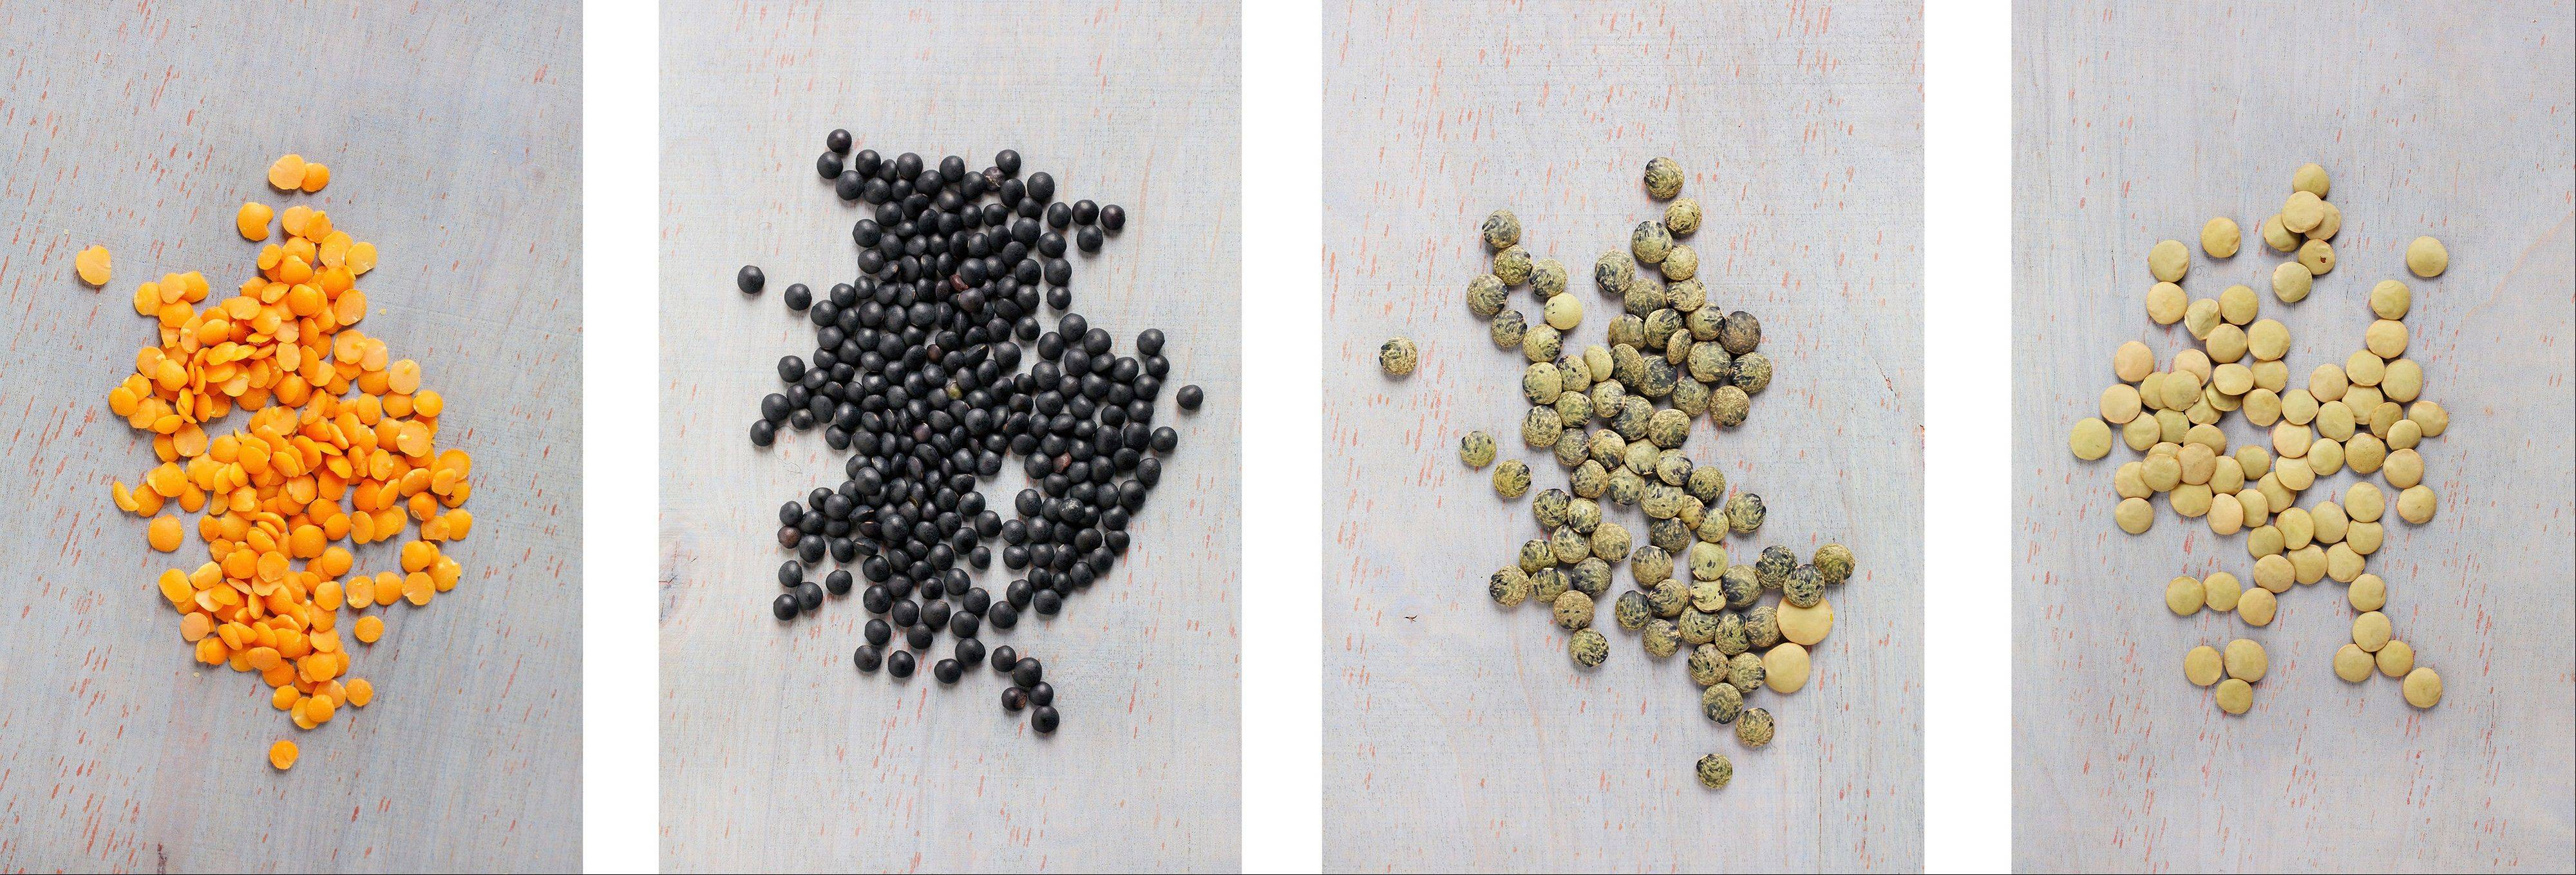 Lentils come in a variety of colors and sizes. From left, red, orange or yellow split lentils; black beluga lentils; French du Puy lentils; and brown or green lentils.